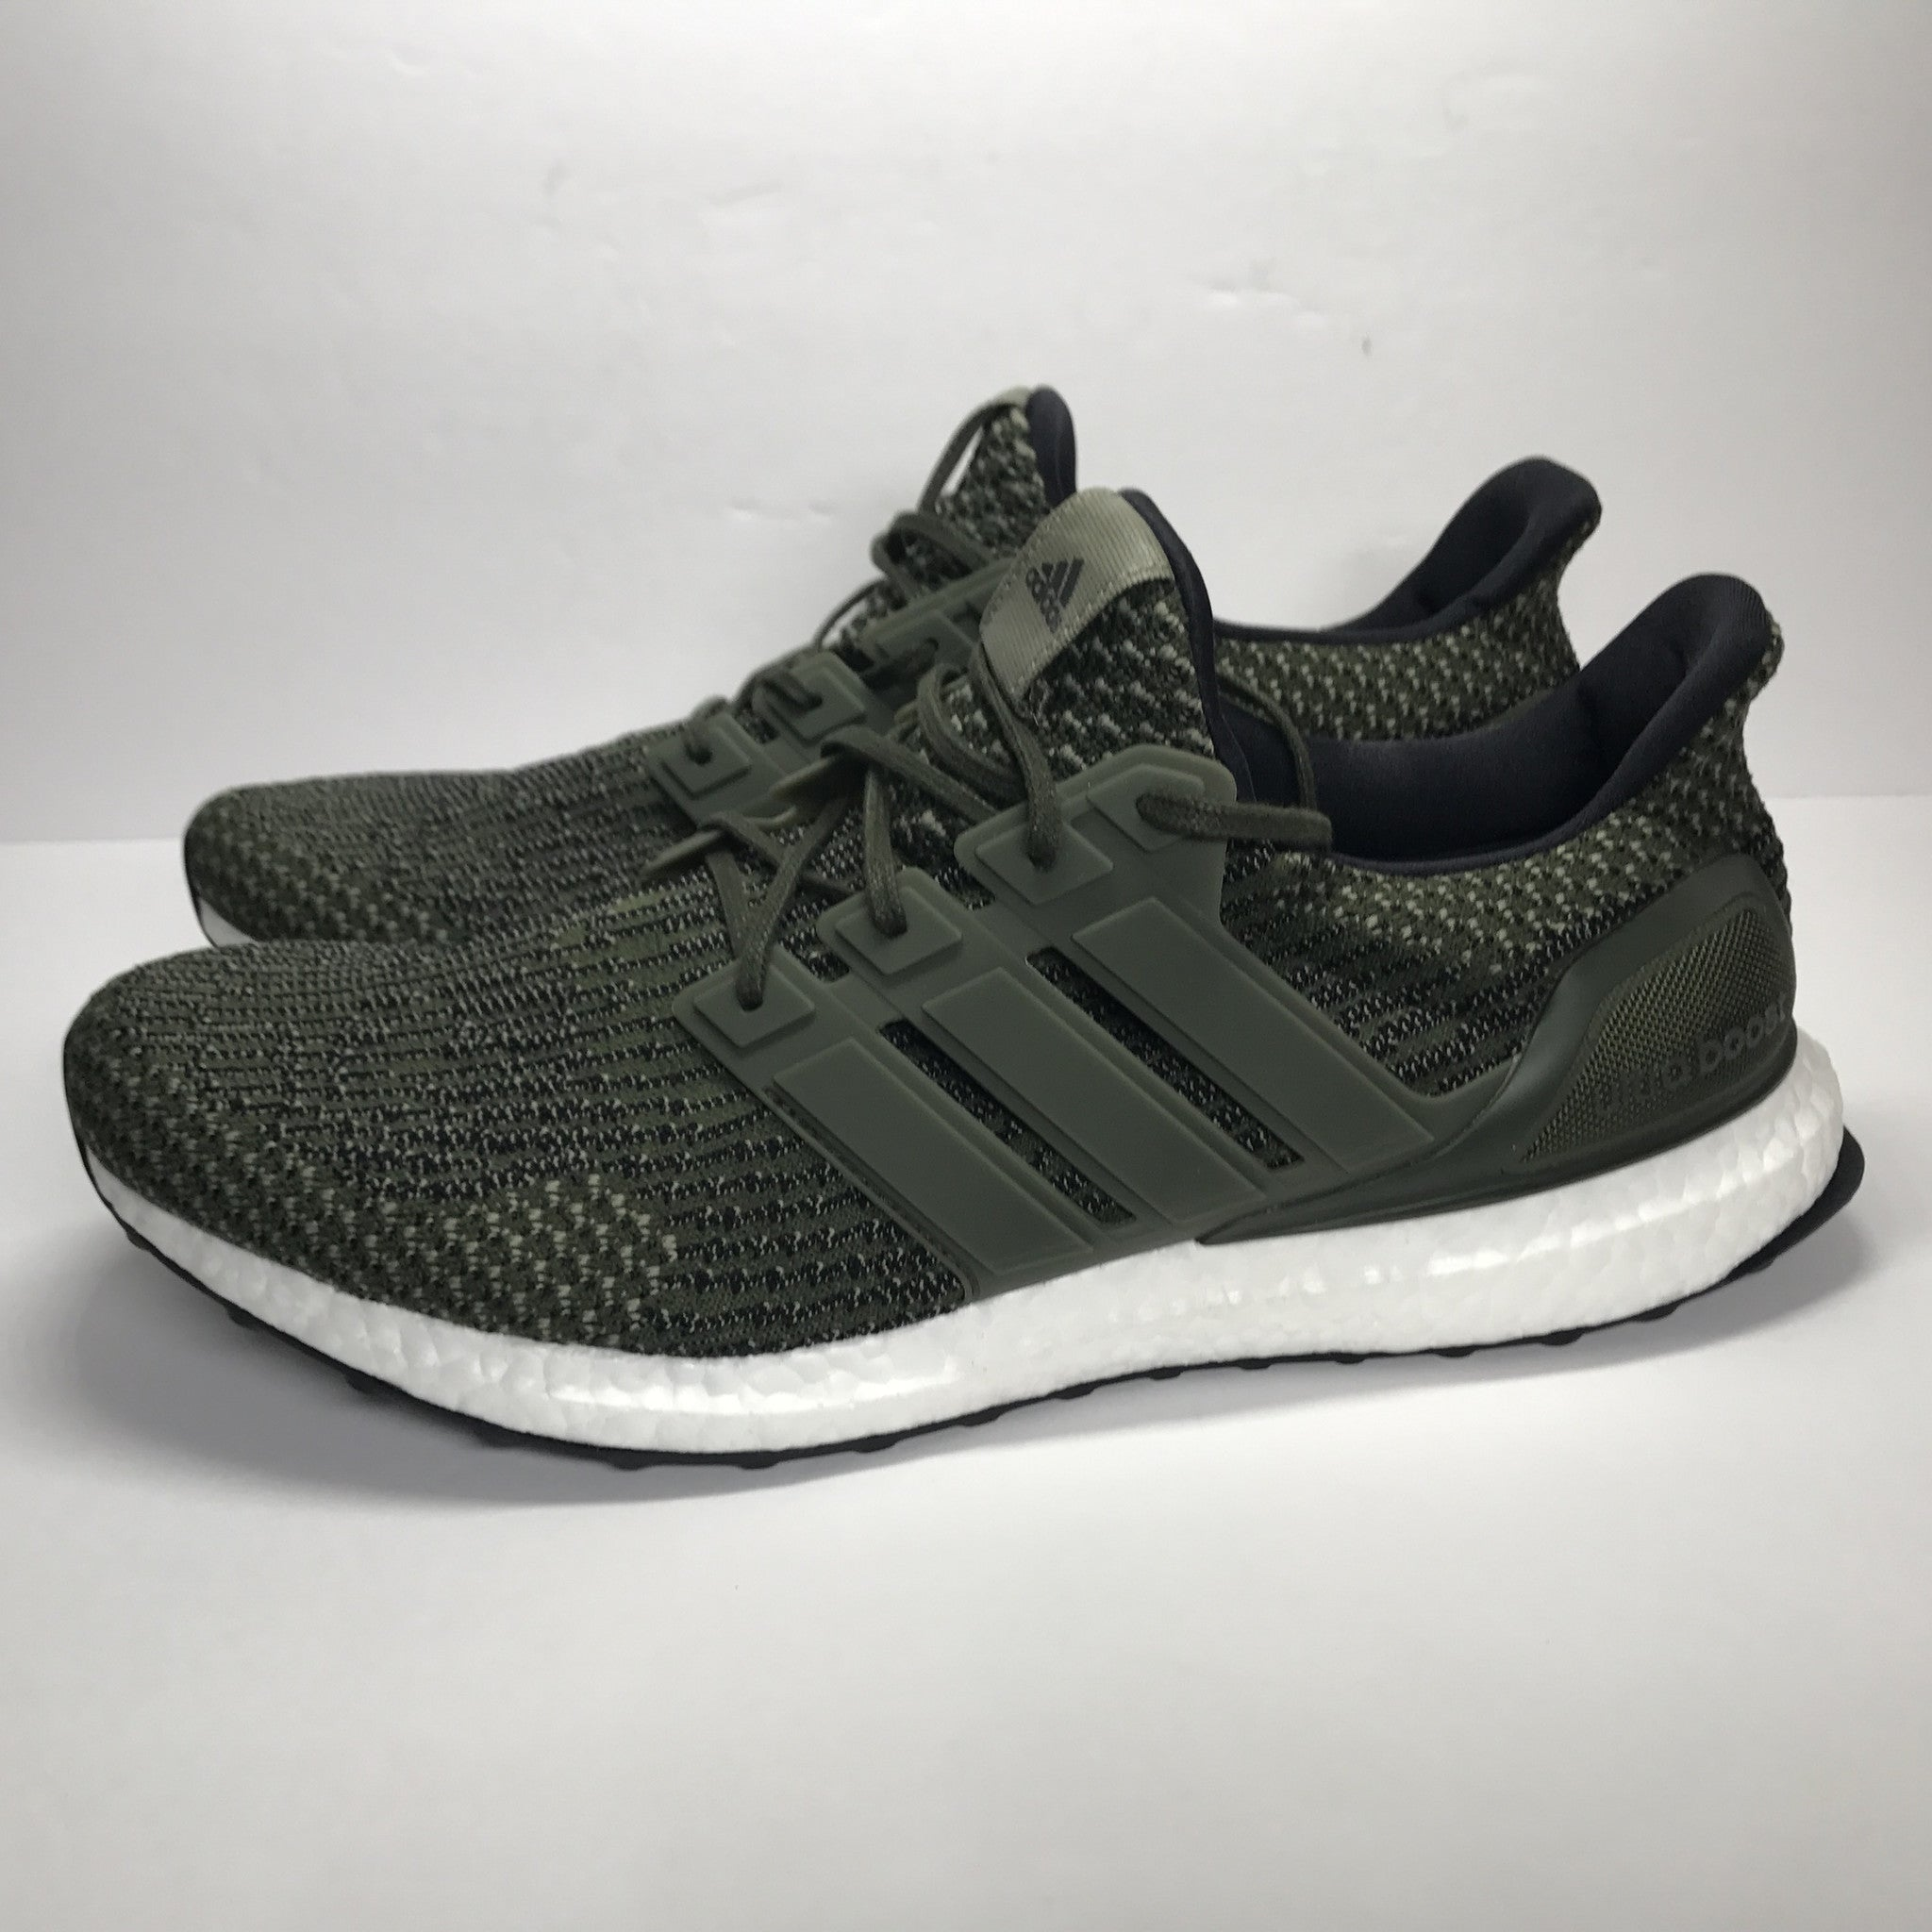 Adidas Ultra Boost 3.0 OREO DS Sz 11.5 for sale in Hayward, CA  Schlussverkauf